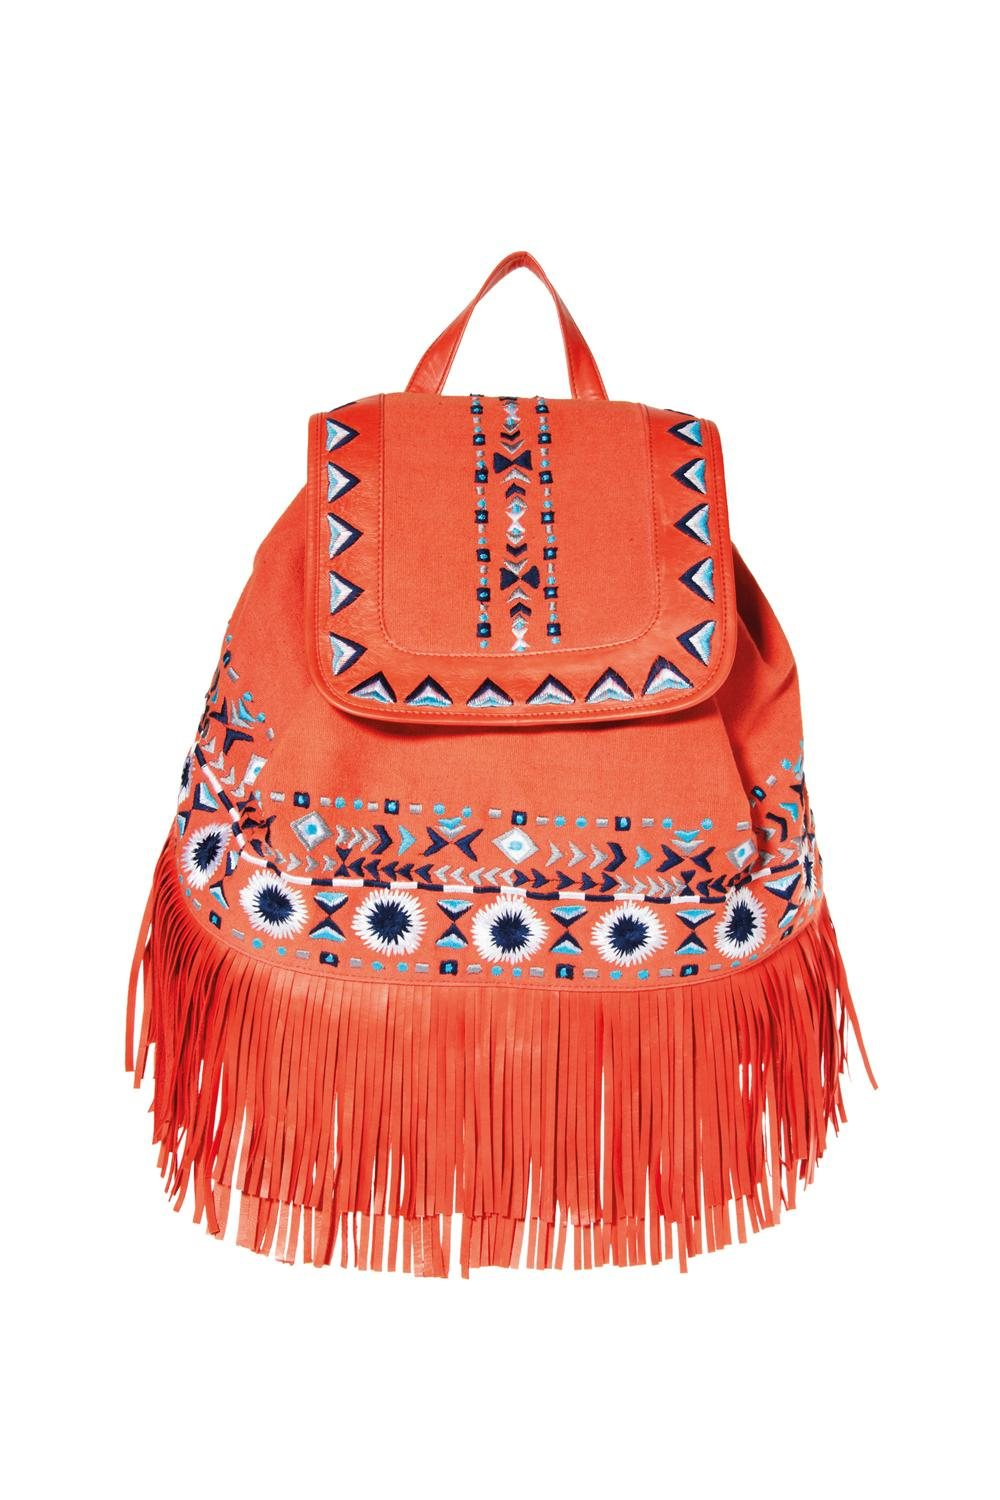 ASOS fringe detail backpack £38 March. Bolso